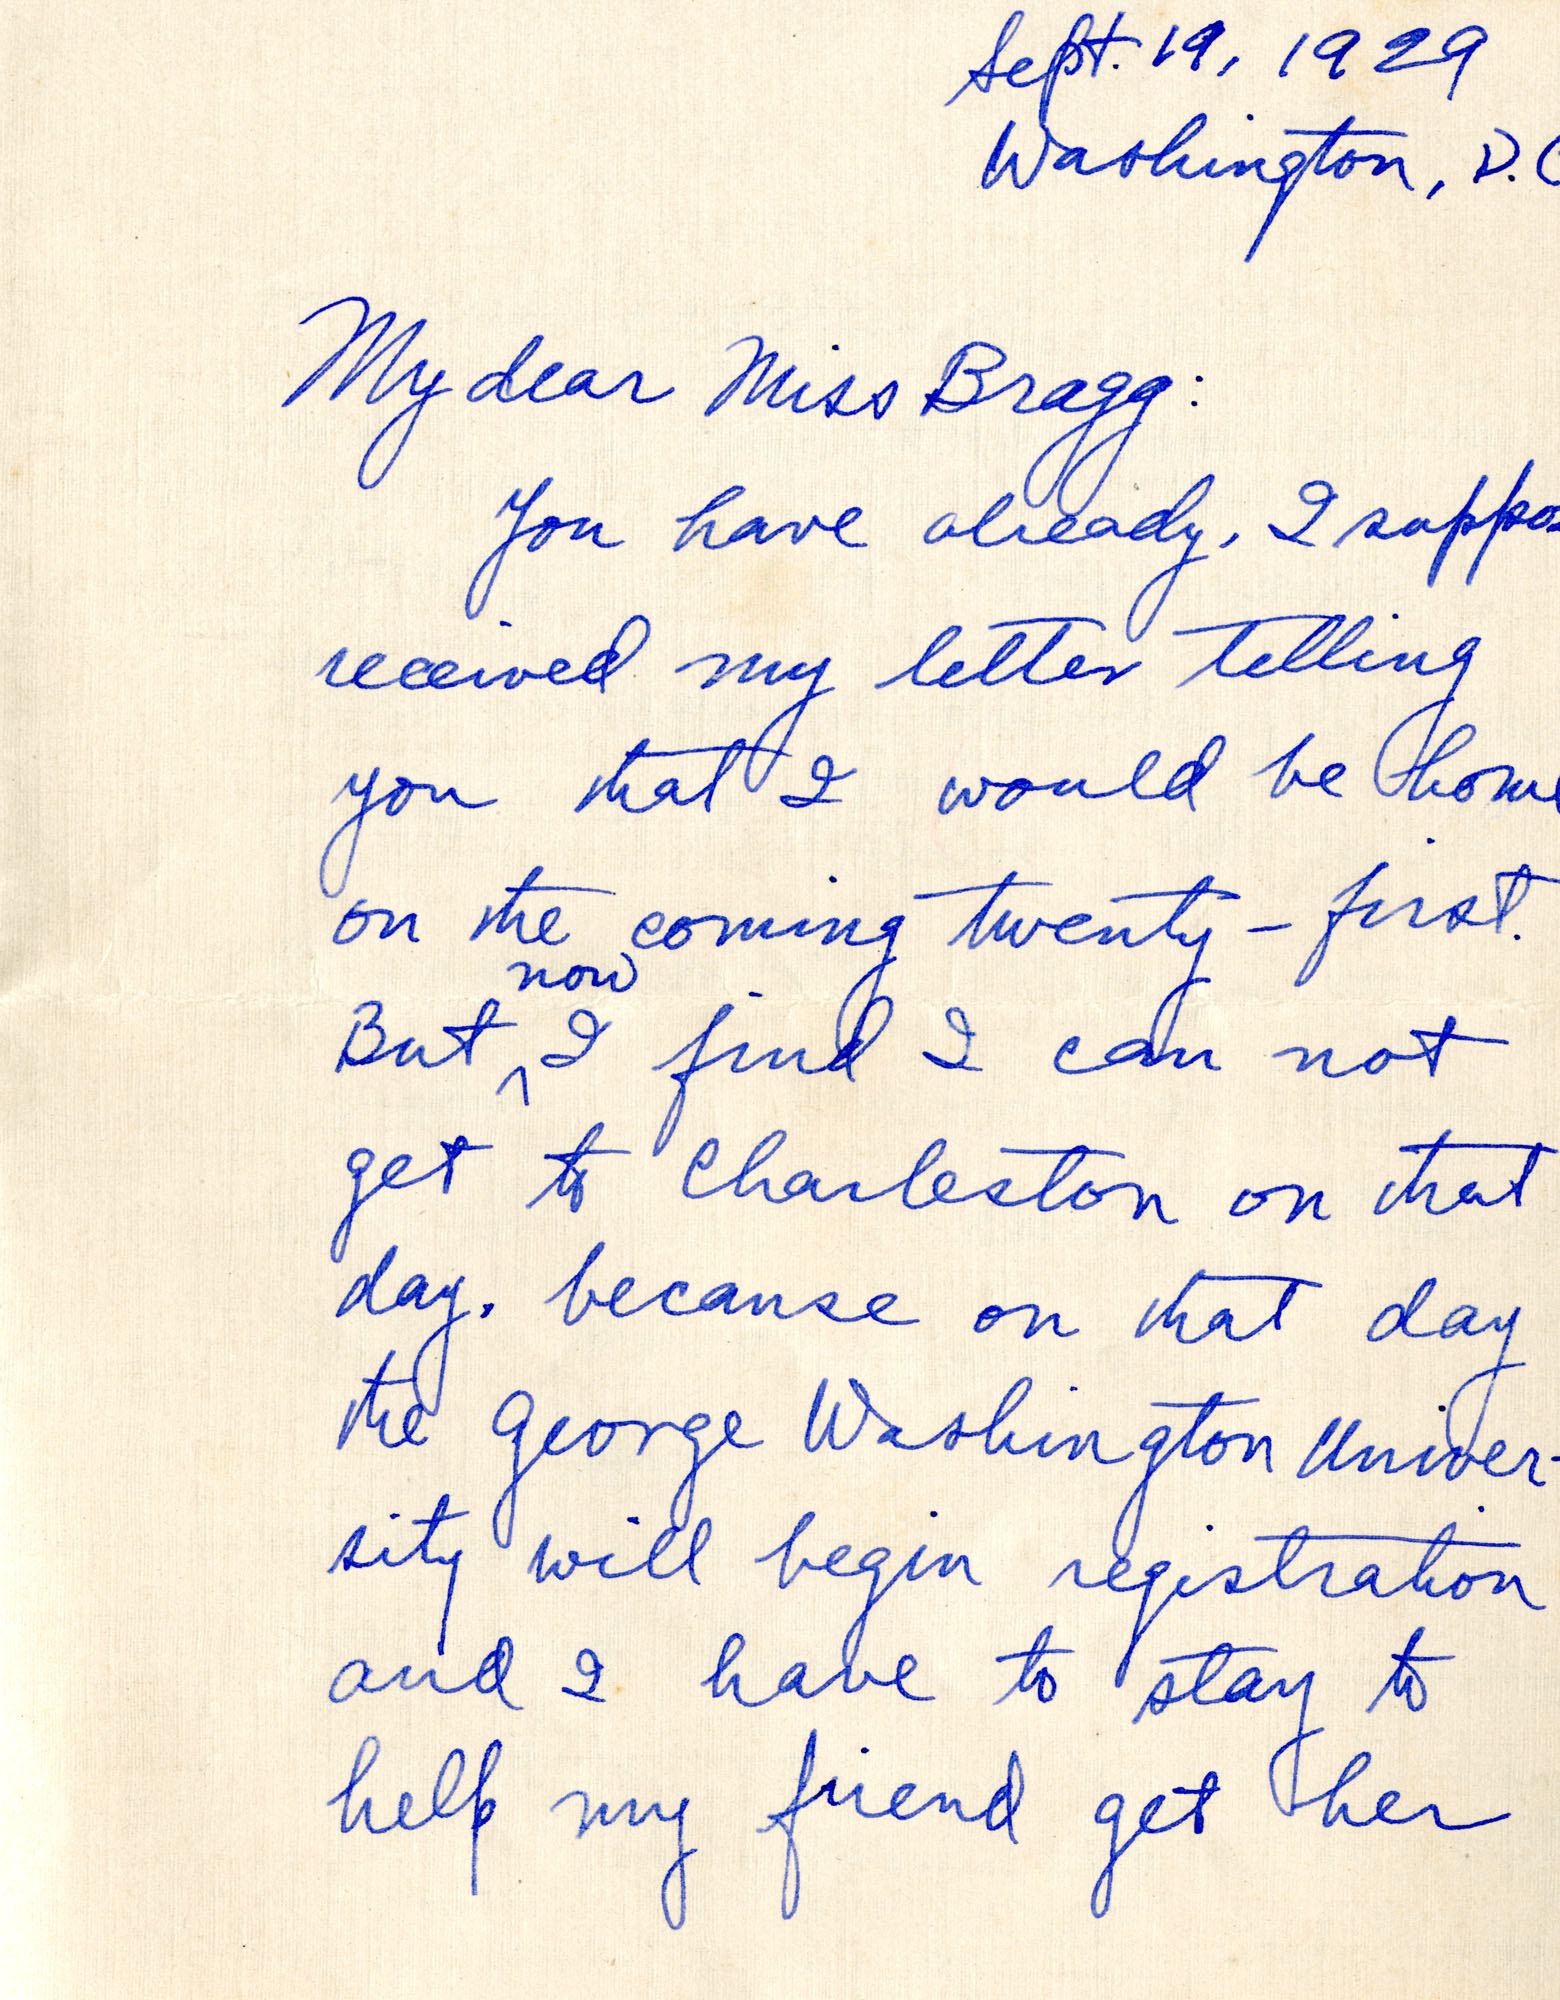 Letter from Fong Lee Wong to Laura M. Bragg, September 19, 1929